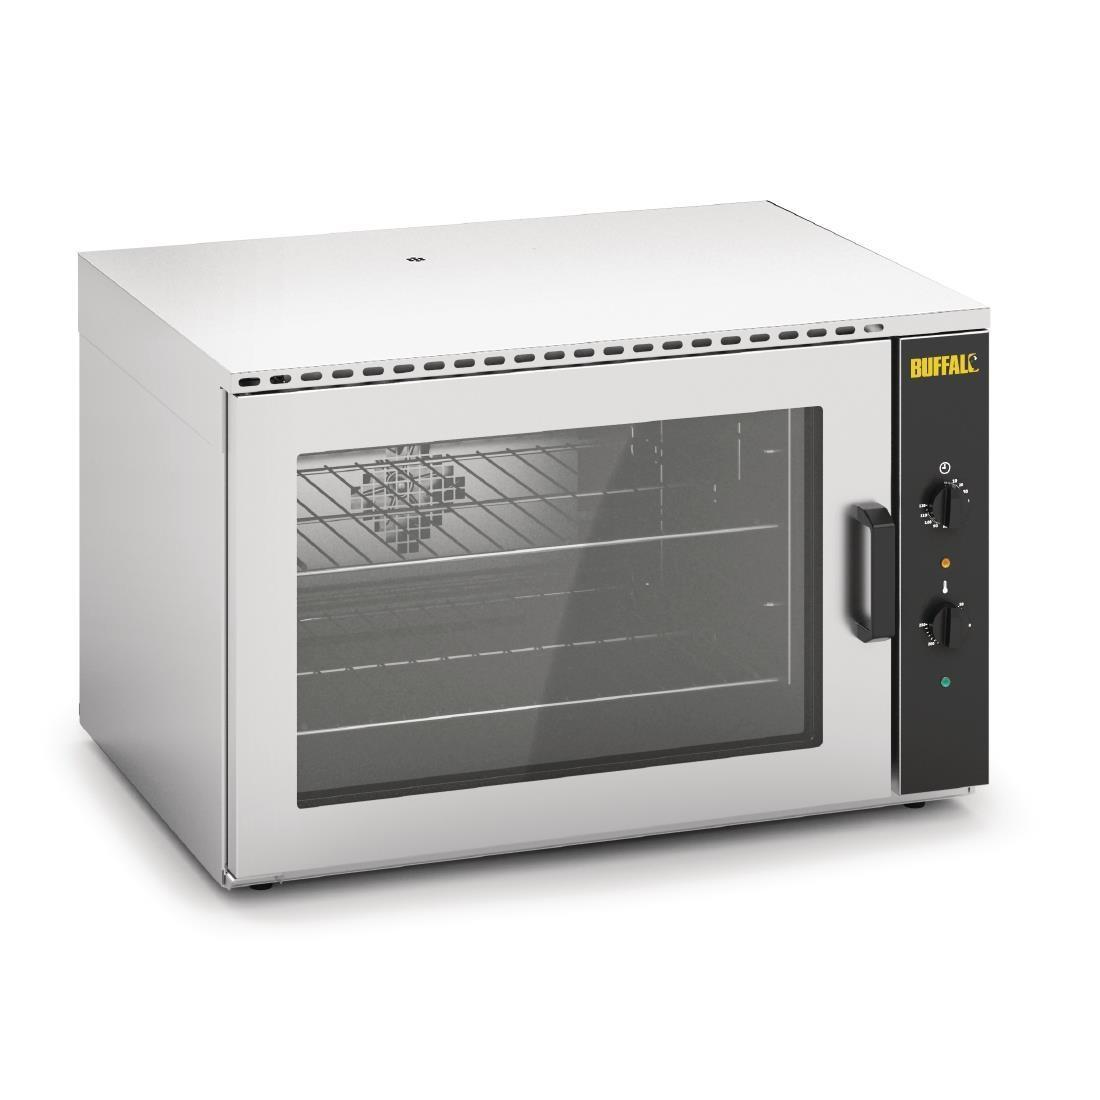 Buffalo Convection Oven 100Ltr - CW864